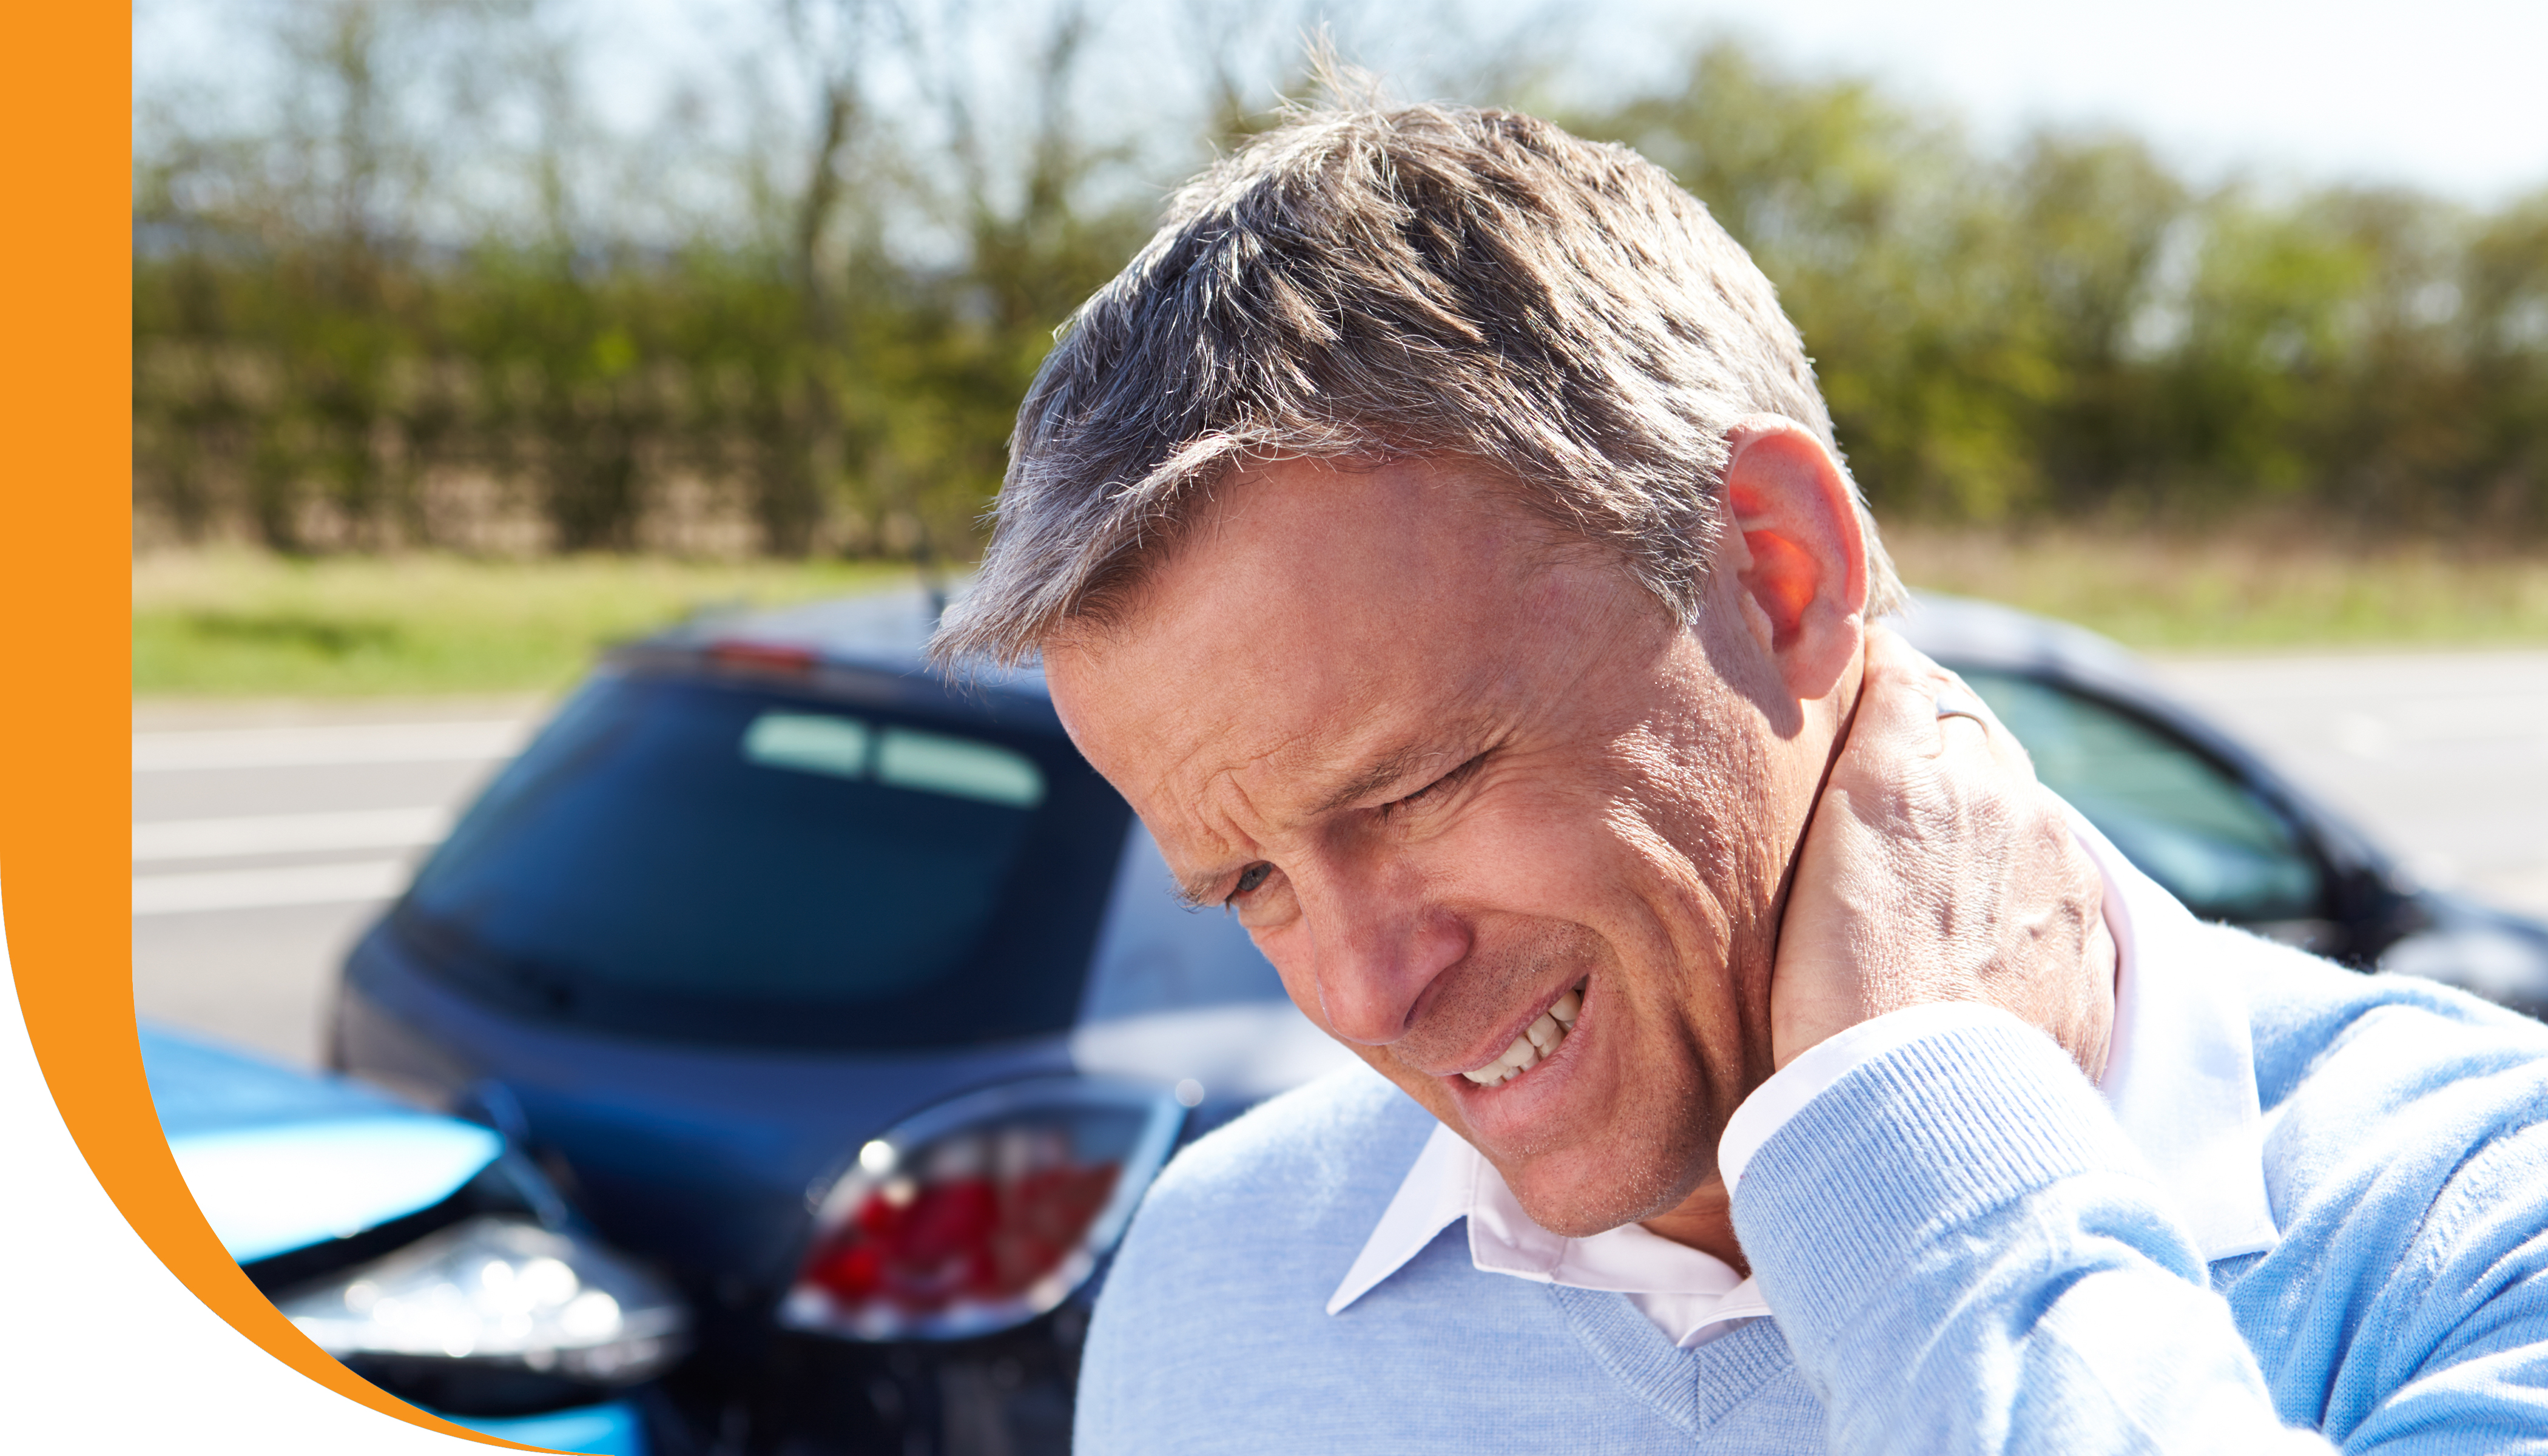 A man feeling neck pain after a car accident.